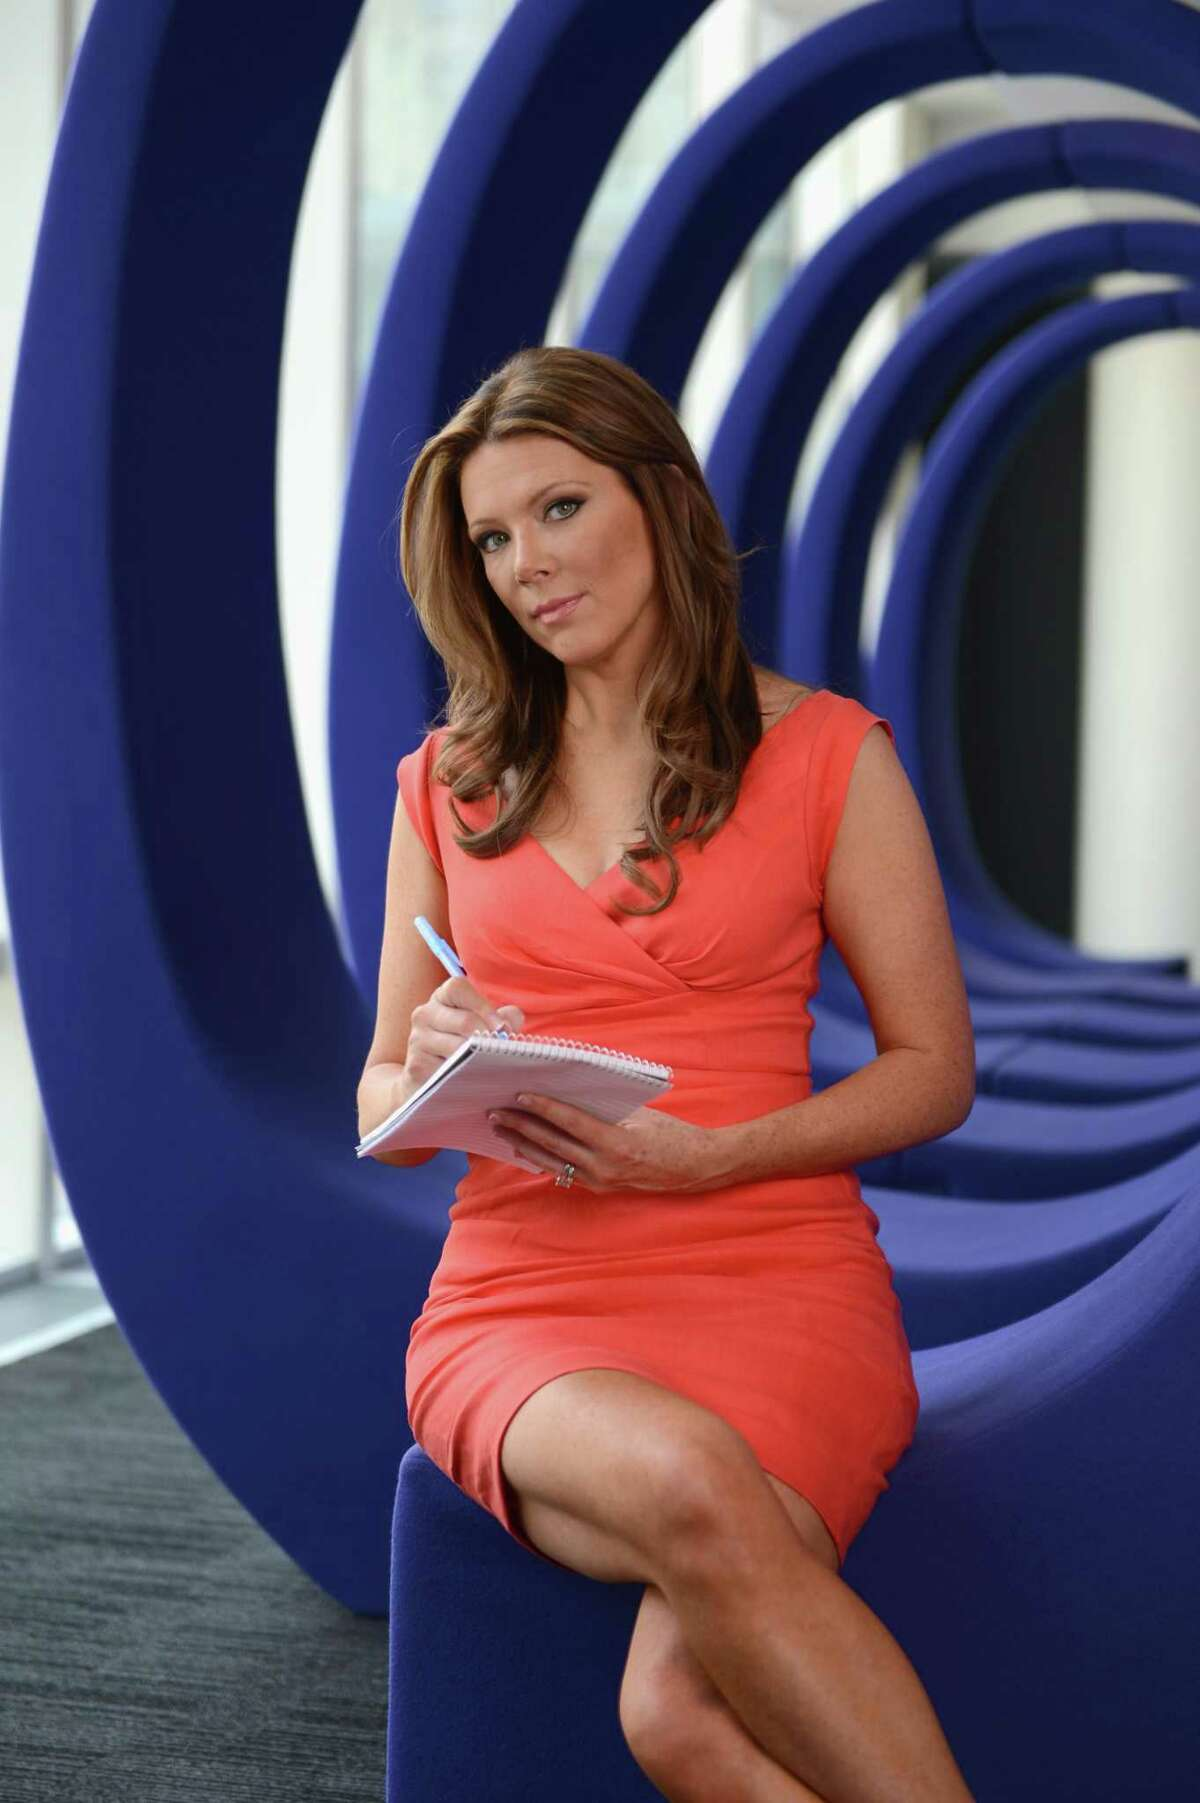 Trish Regan poses during the Resident Magazine May 2013 Cover Shoot at the Bloomberg Foundation Building in New York City.